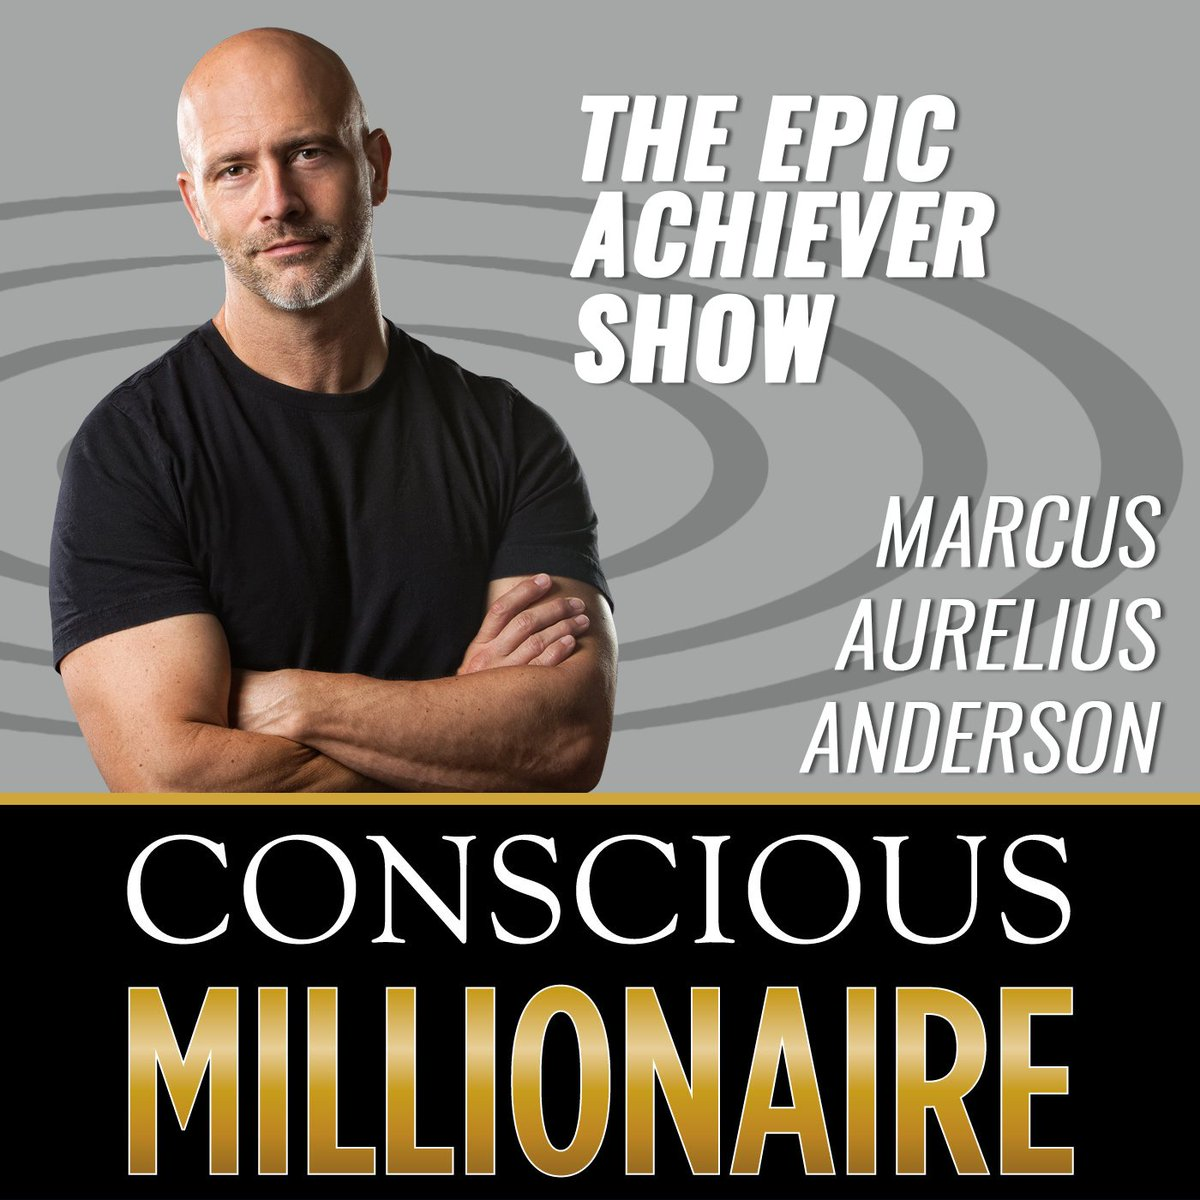 Become an Epic Achiever now as an entrepreneur!  Listen https://tinyurl.com/yy84zend #businessbook #podcasthost marketing pic.twitter.com/oCCc9nNGH2